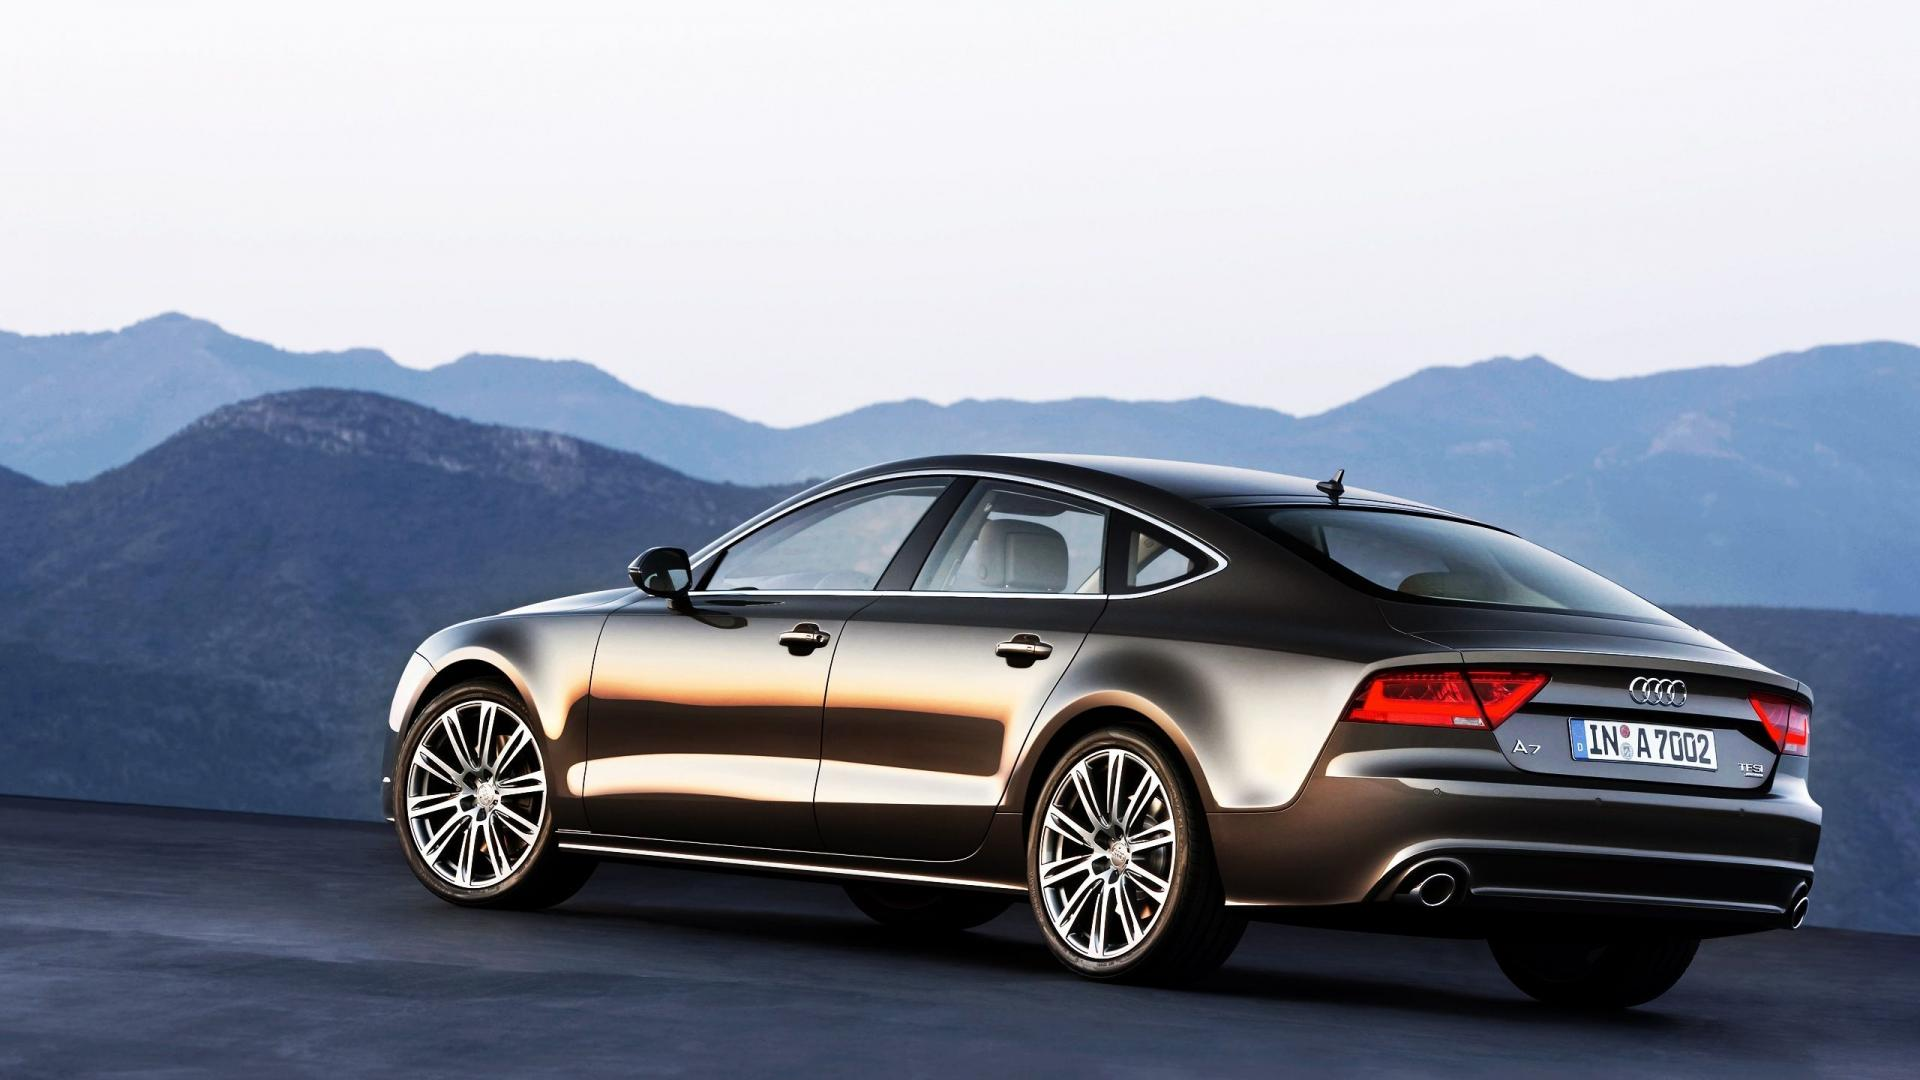 audi a7 related images start 0 weili automotive network. Black Bedroom Furniture Sets. Home Design Ideas